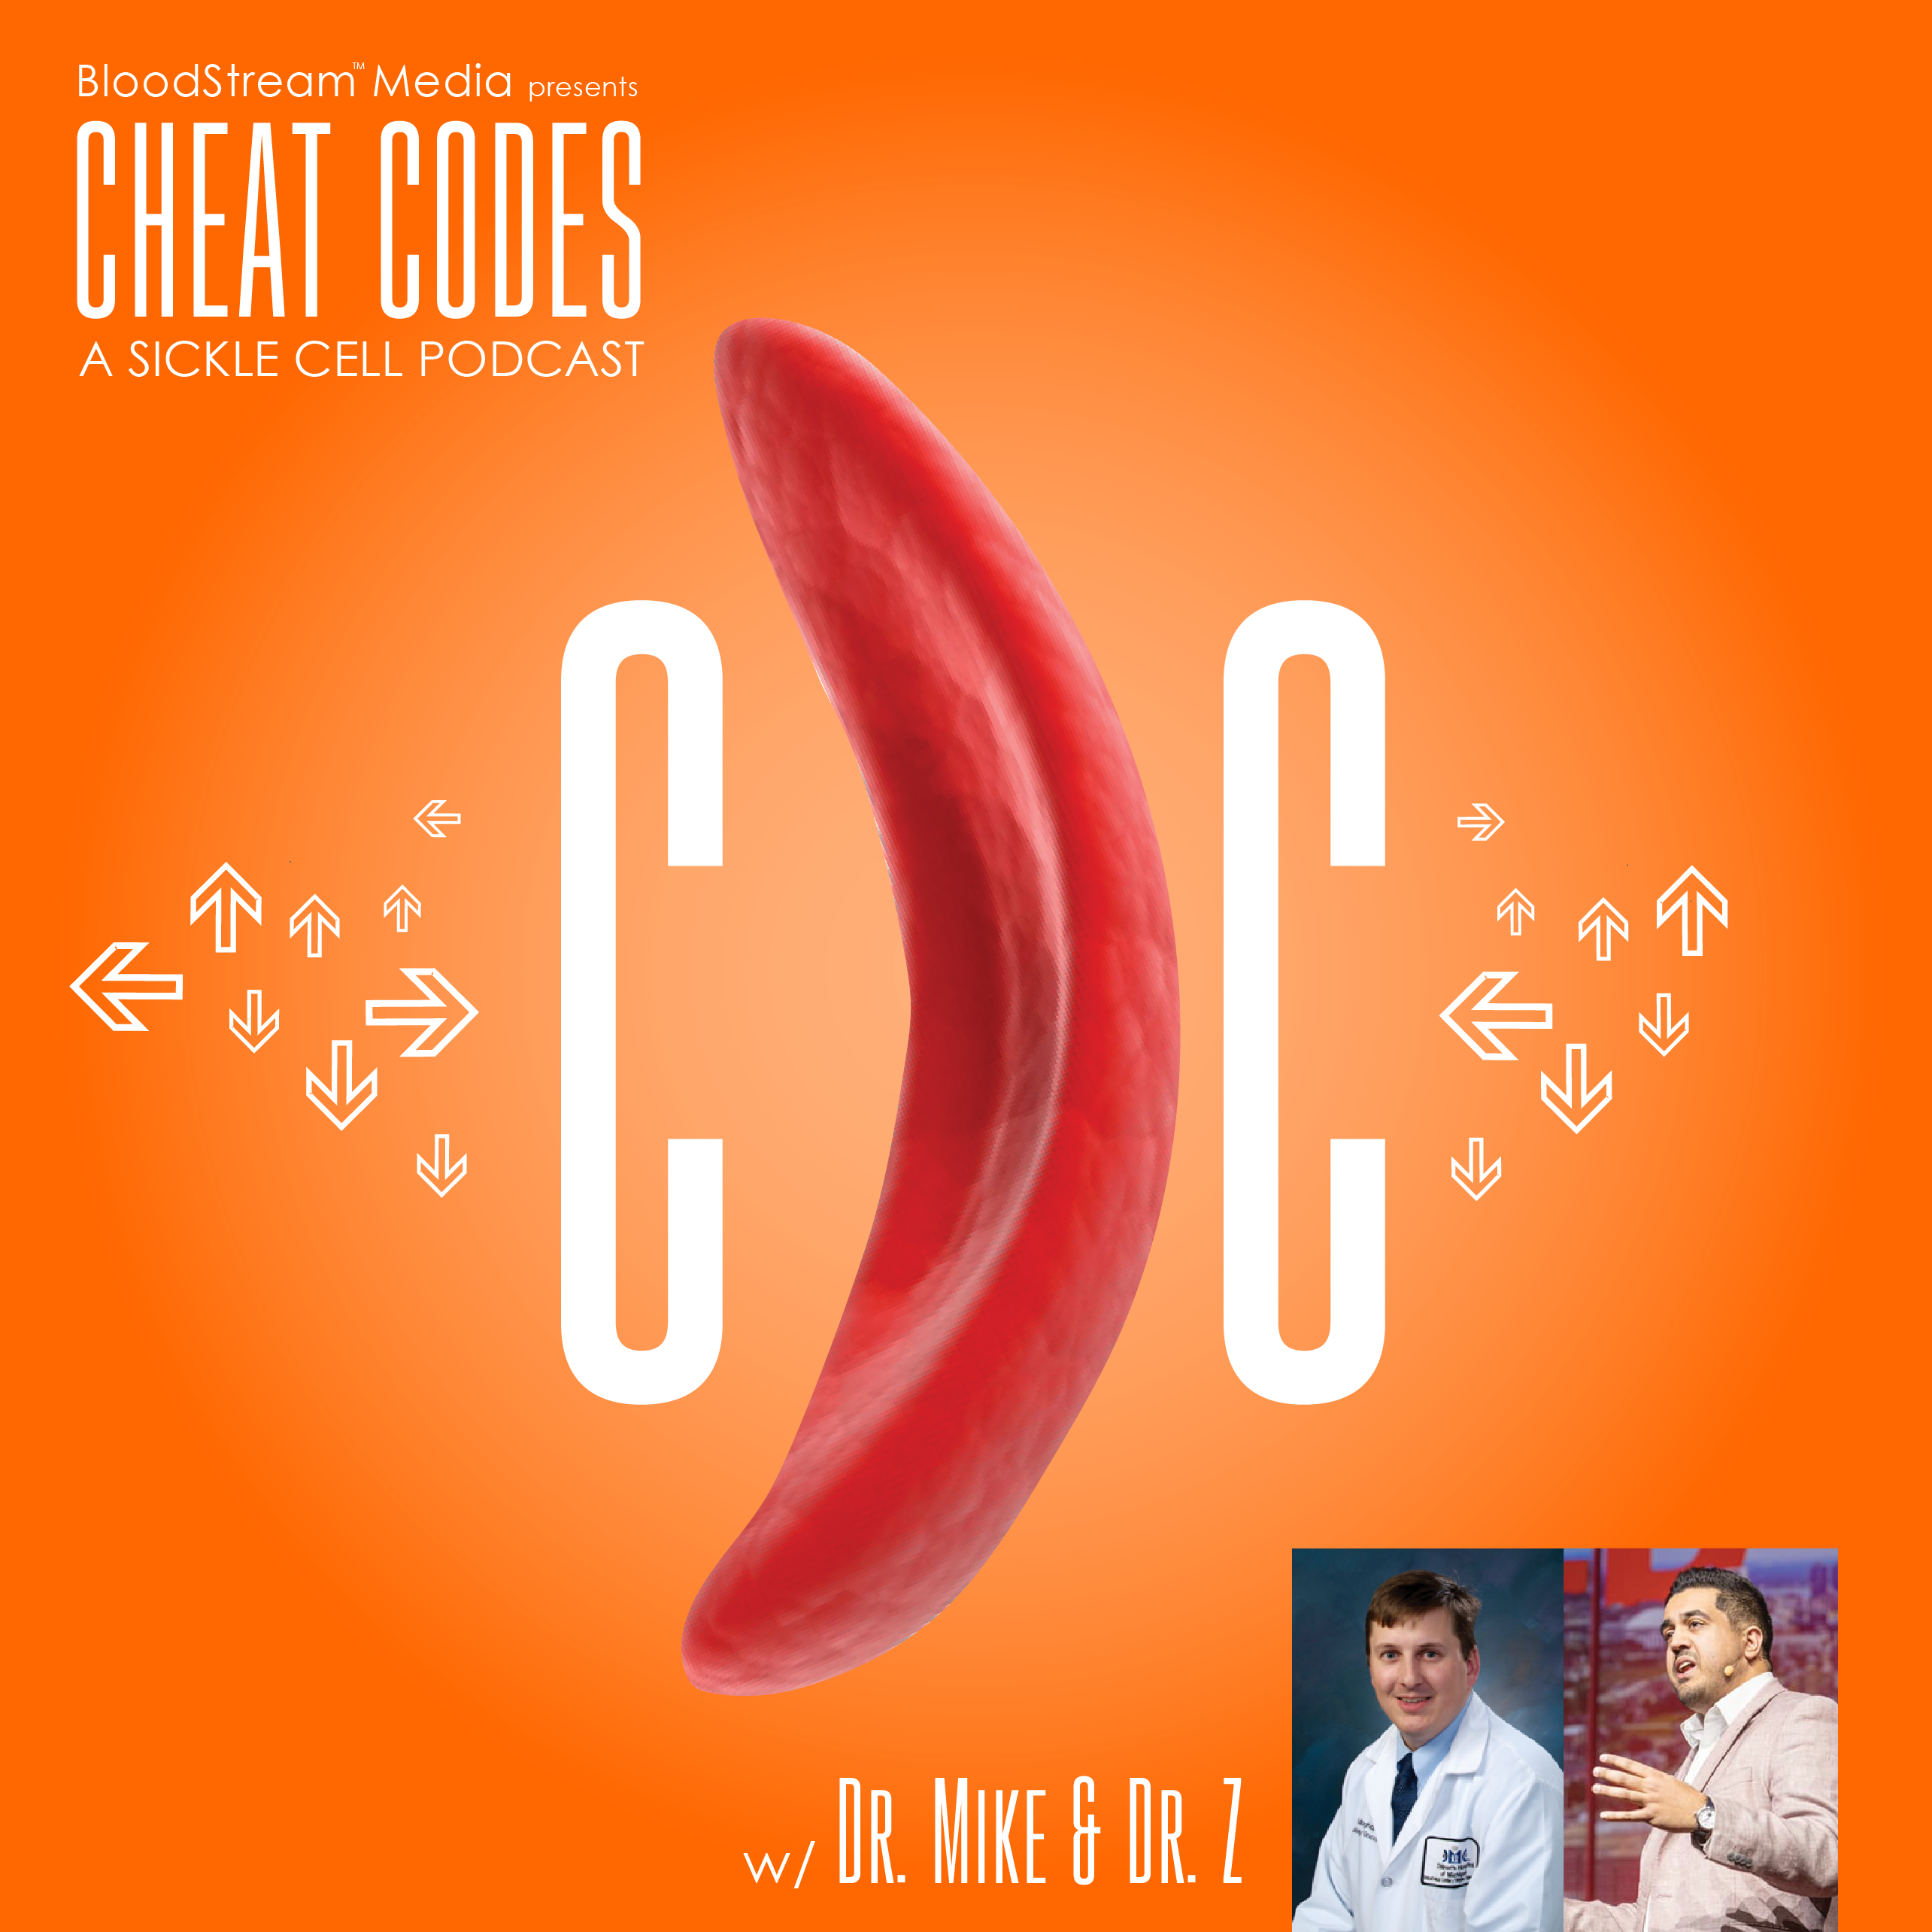 Cheat Codes: A Sickle Cell Podcast